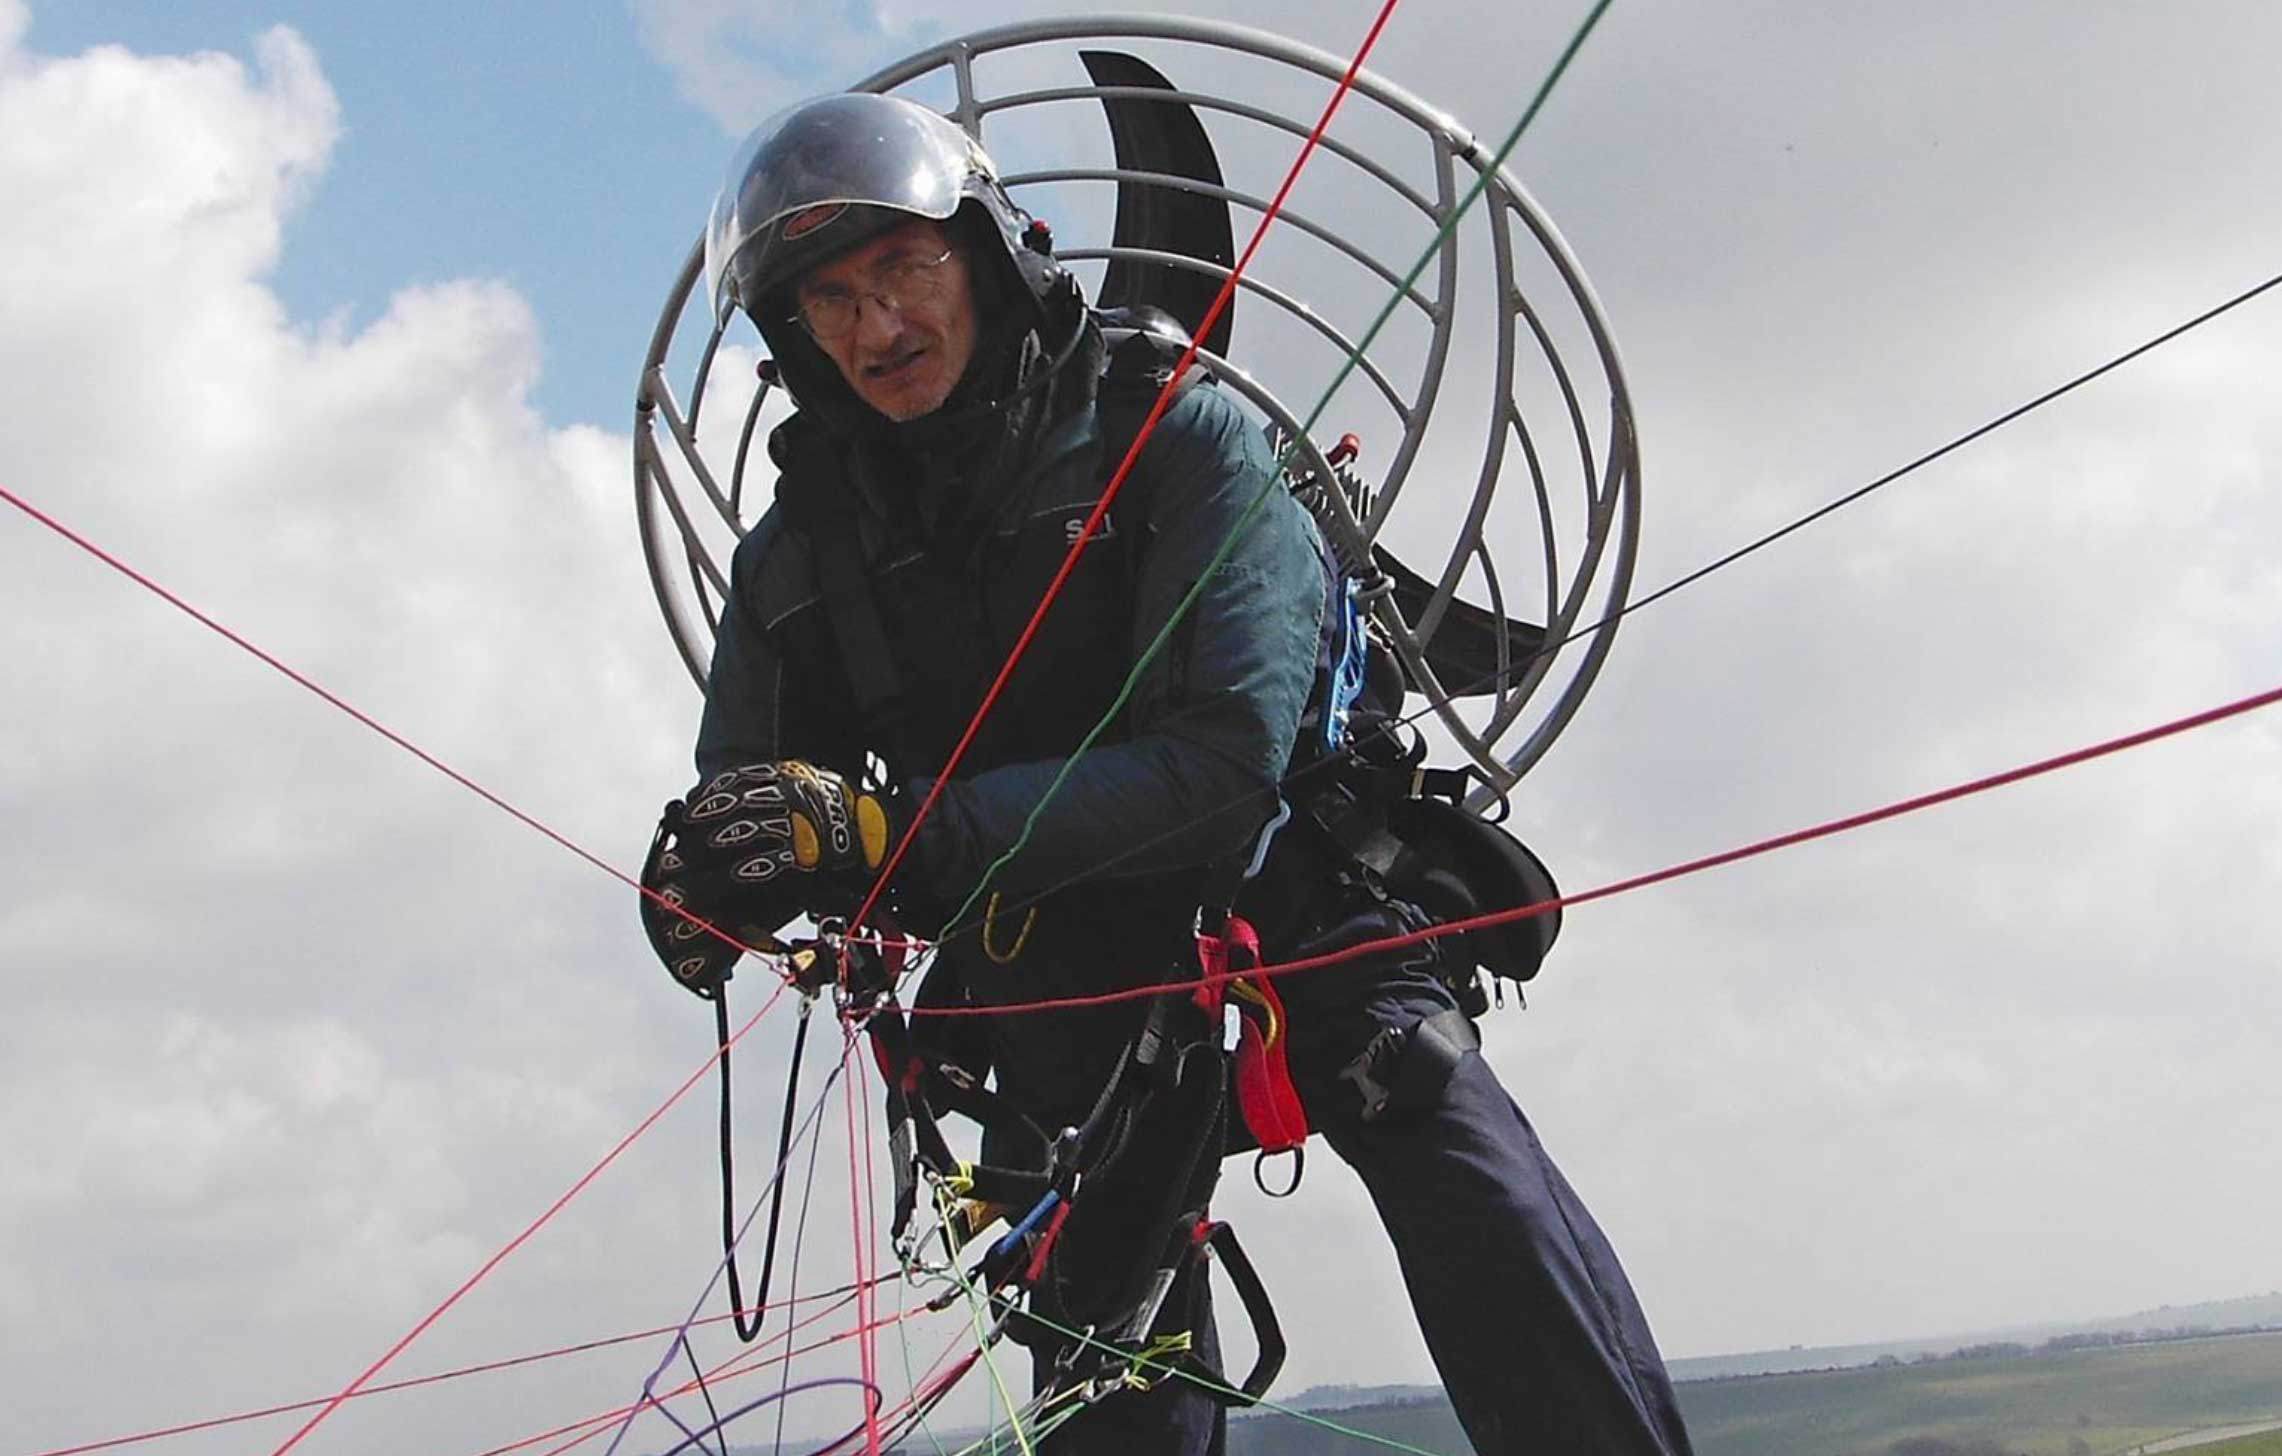 Colin Borland paramotor training instructor